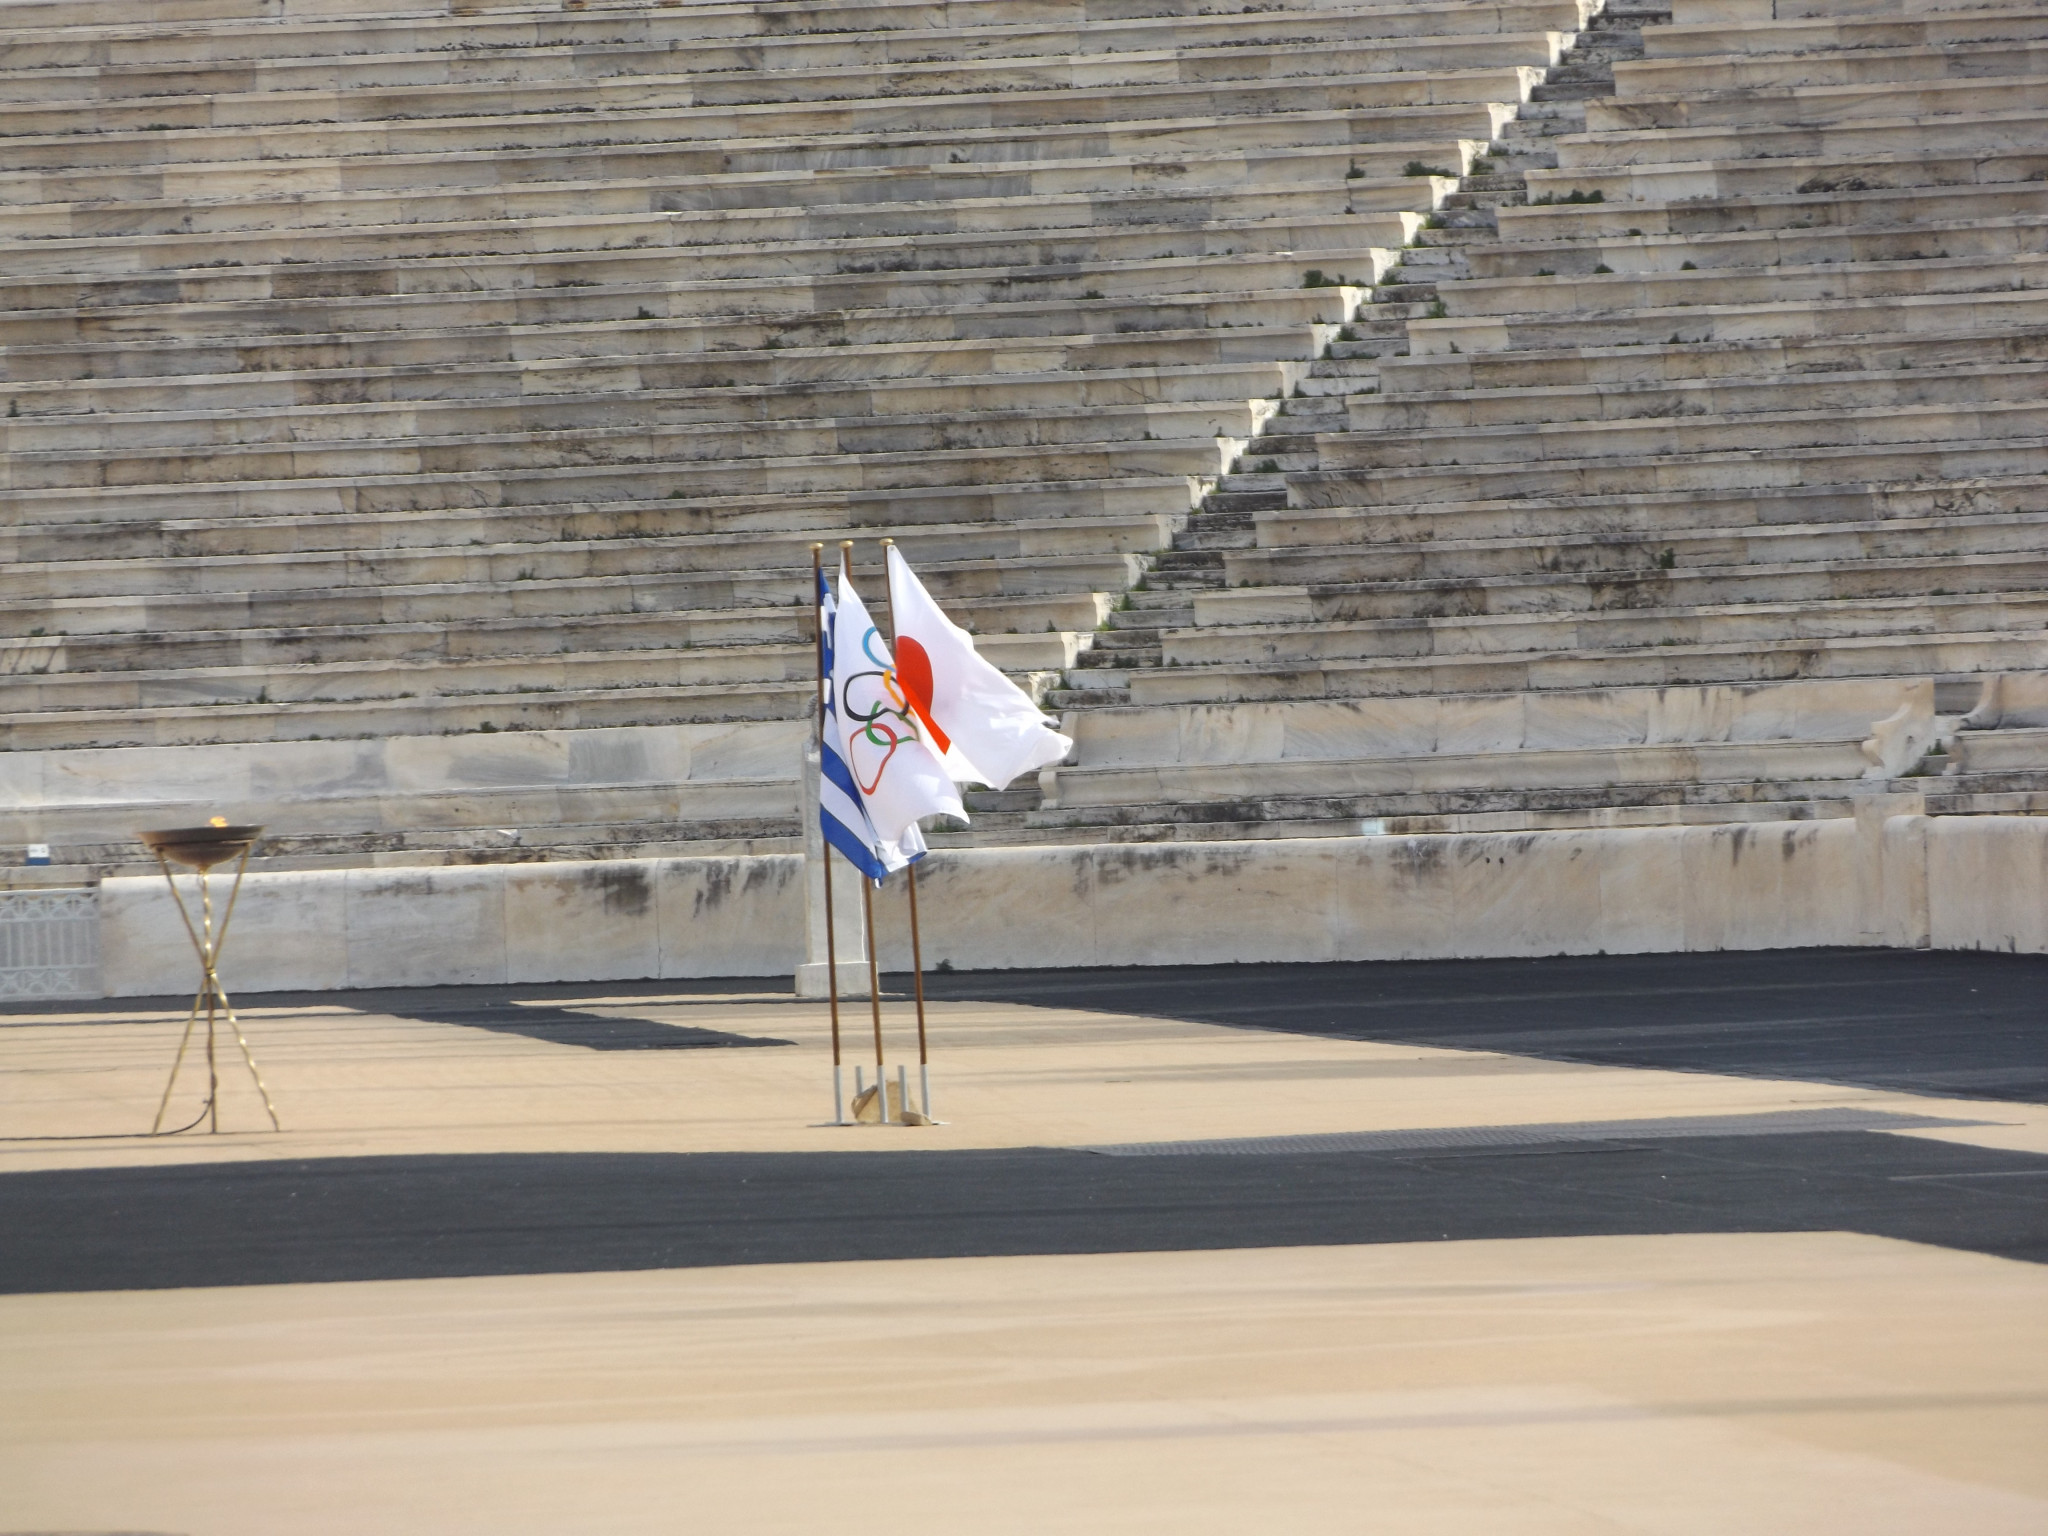 Greek, Japanese and Olympic flags at the Panathinaiko Stadium in Athens ©Philip Barker